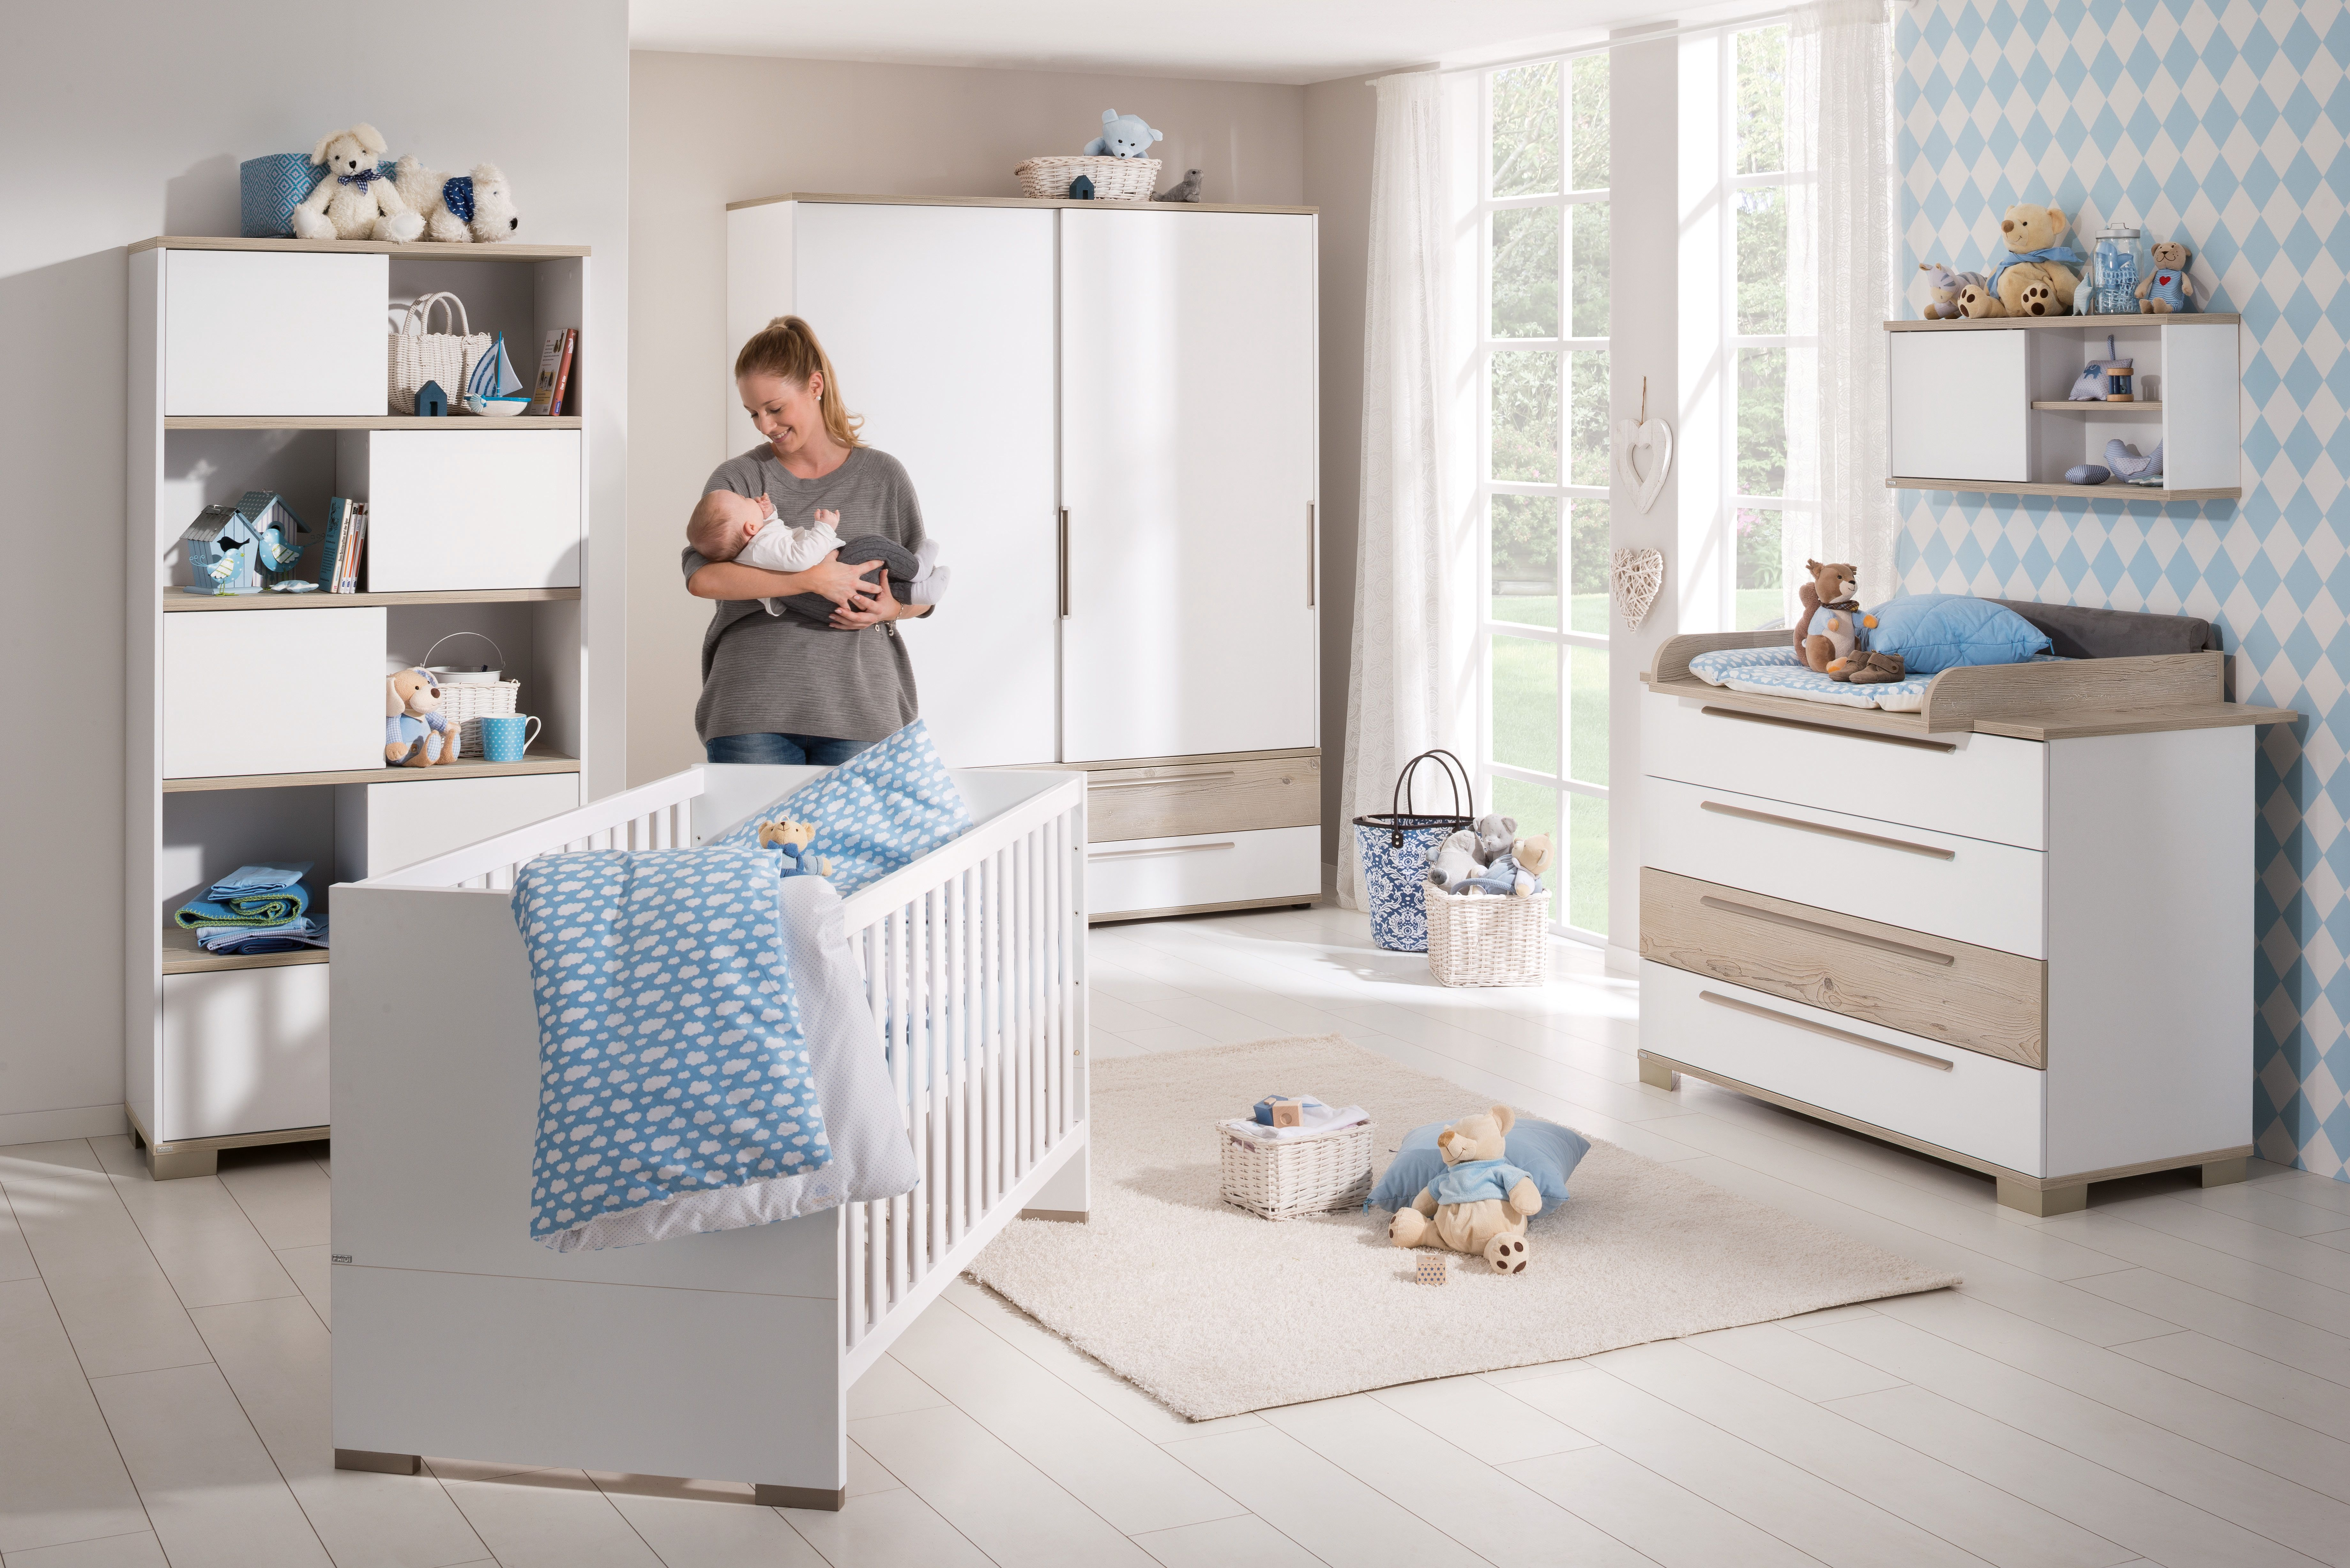 Babyzimmer Filou ~ Babyzimmer filou. babyzimmer granny tlg with babyzimmer filou